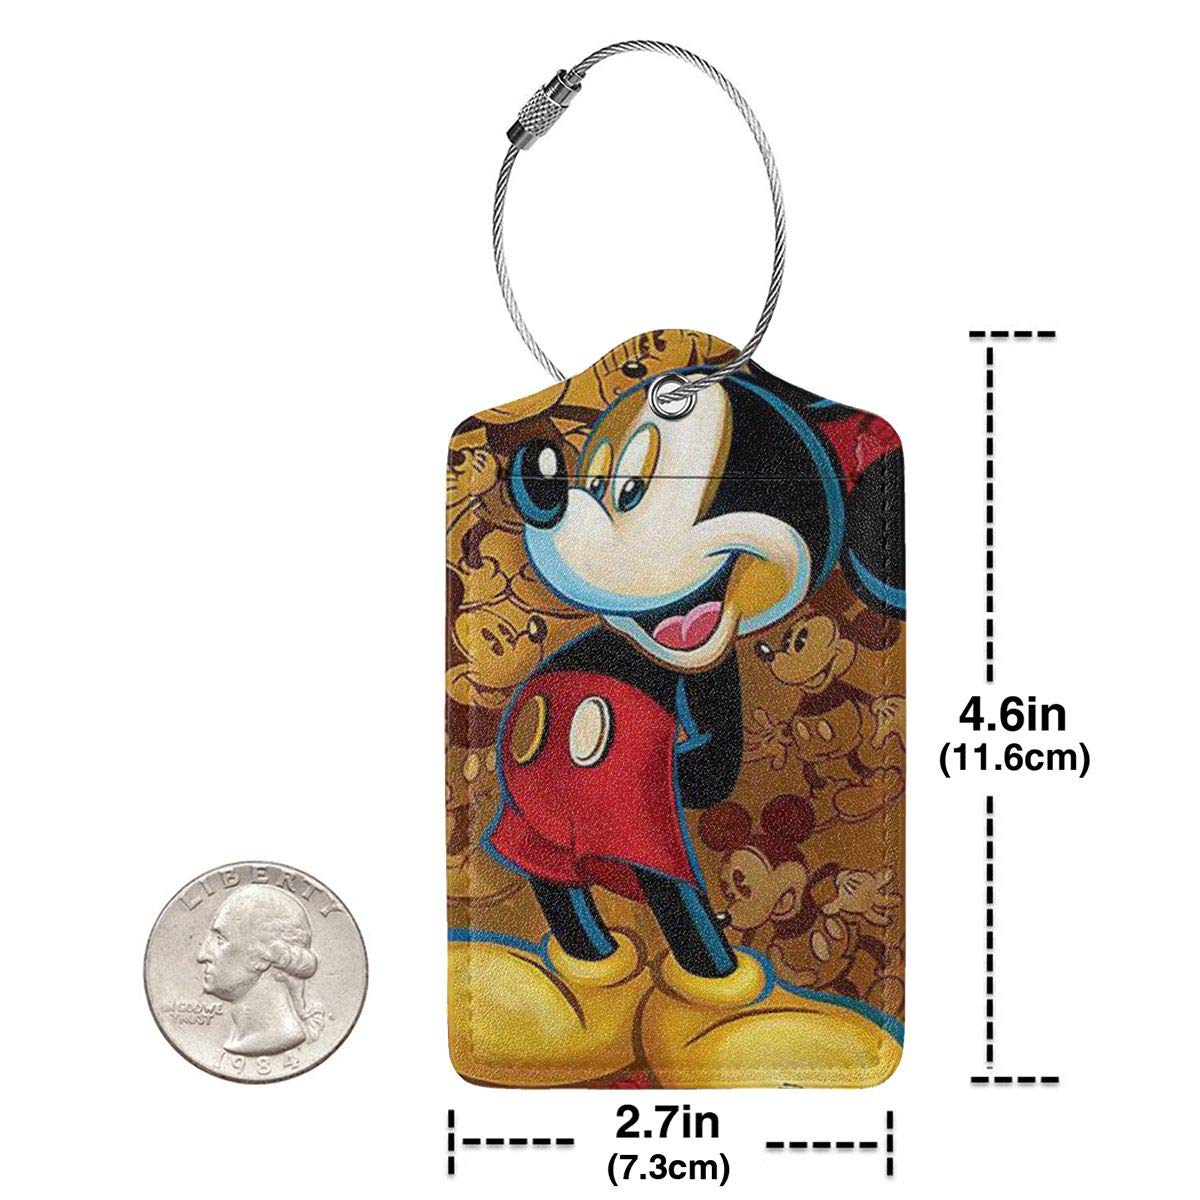 Fashion Cool Mickey Mouse Soft Leather Luggage Tags With Privacy Cover 1-4 Pcs Choose Suit For Travel,Vacation